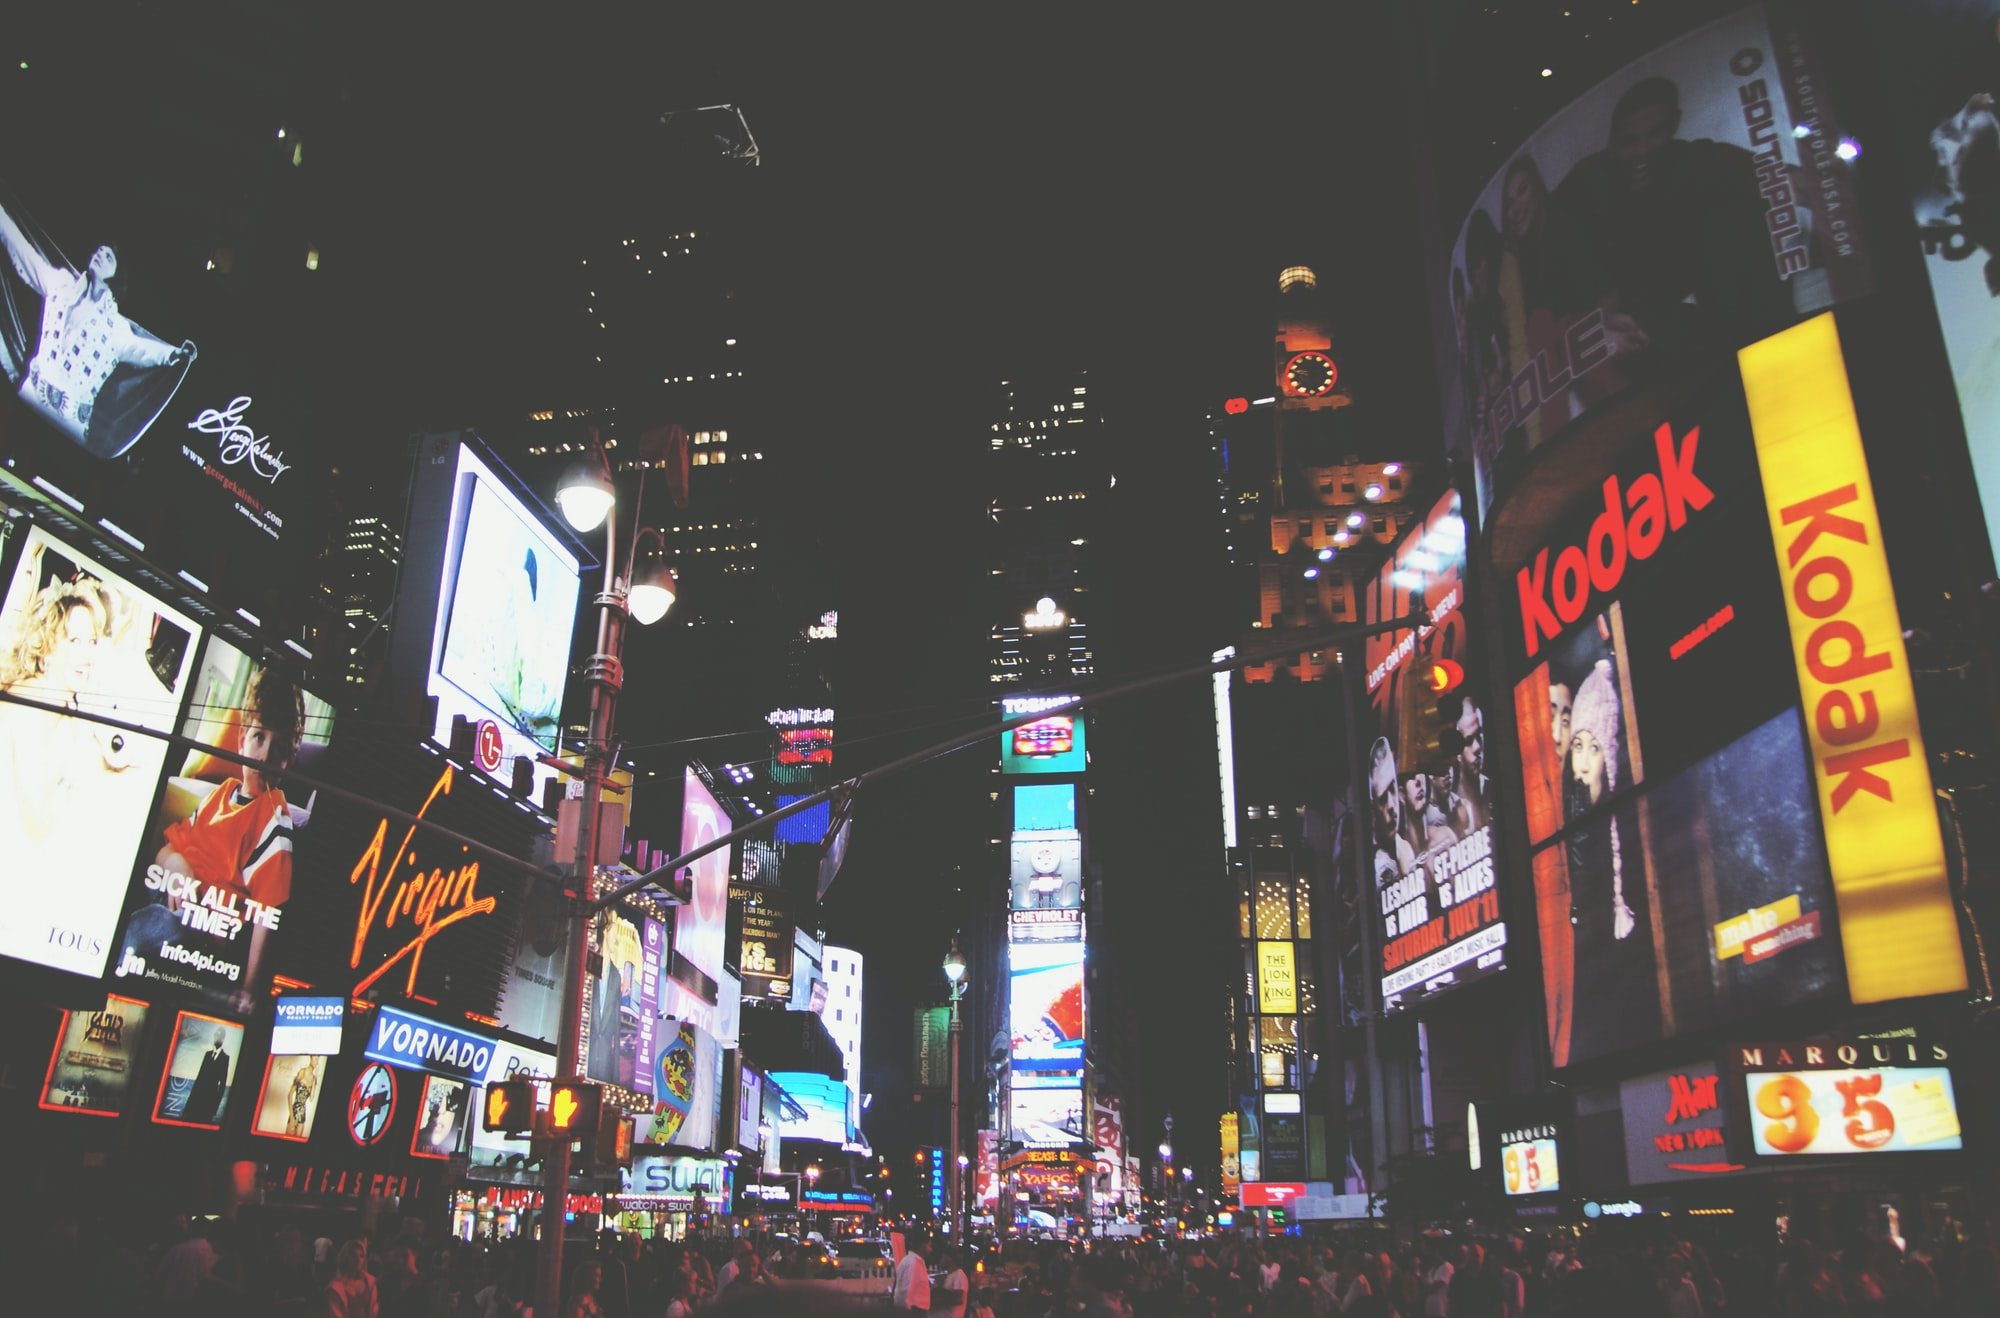 On my way to a Broadway show. Times Square filled with people at night.